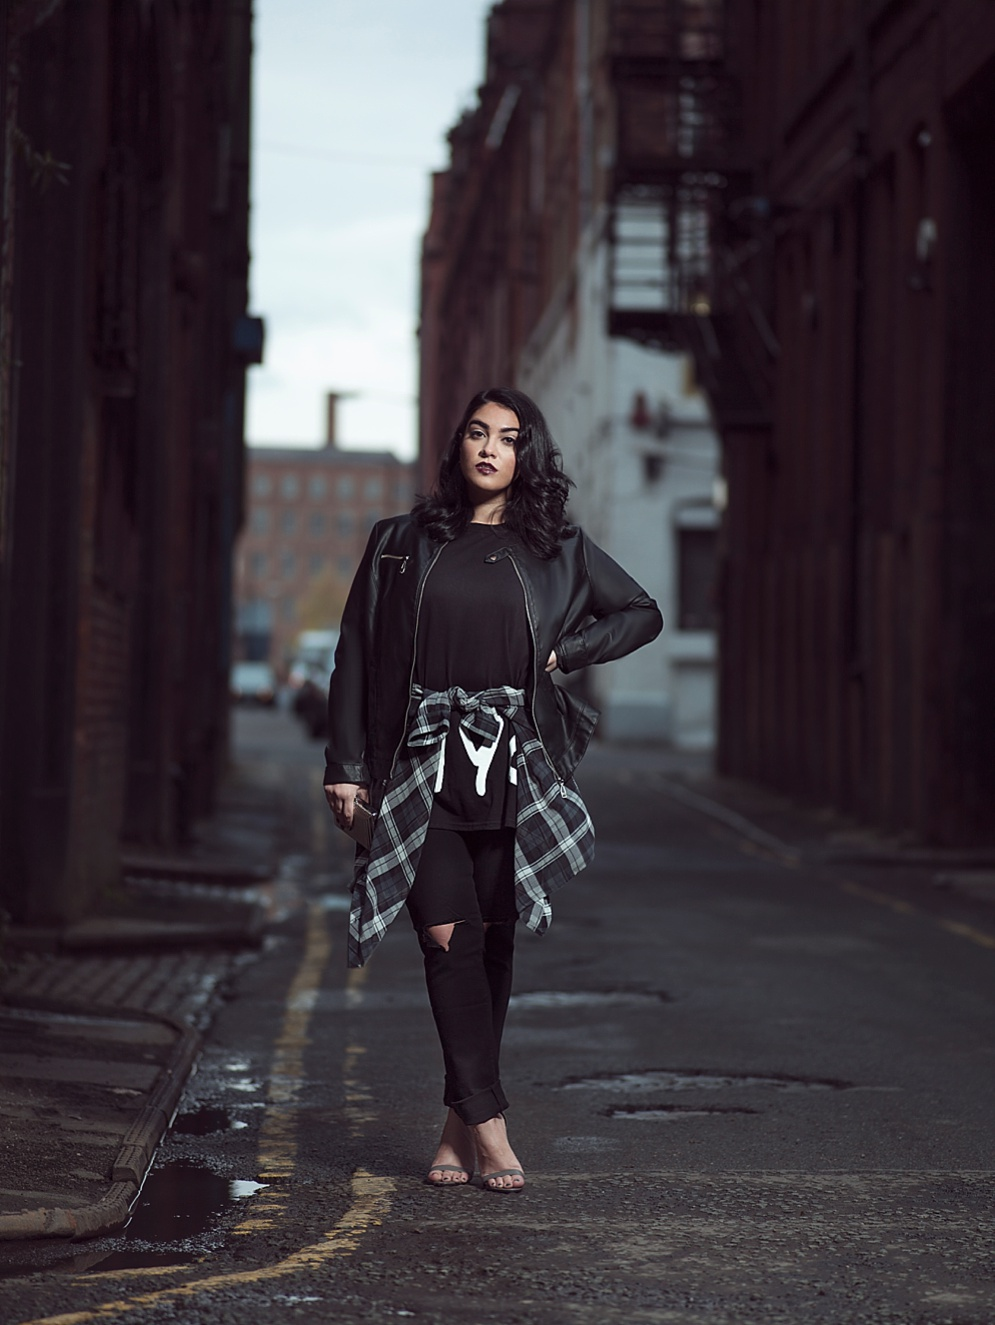 NADIA ABOULHOSN, Fashion Blogger, Matt Stansfield, fashion Photographer, New York, Manchester